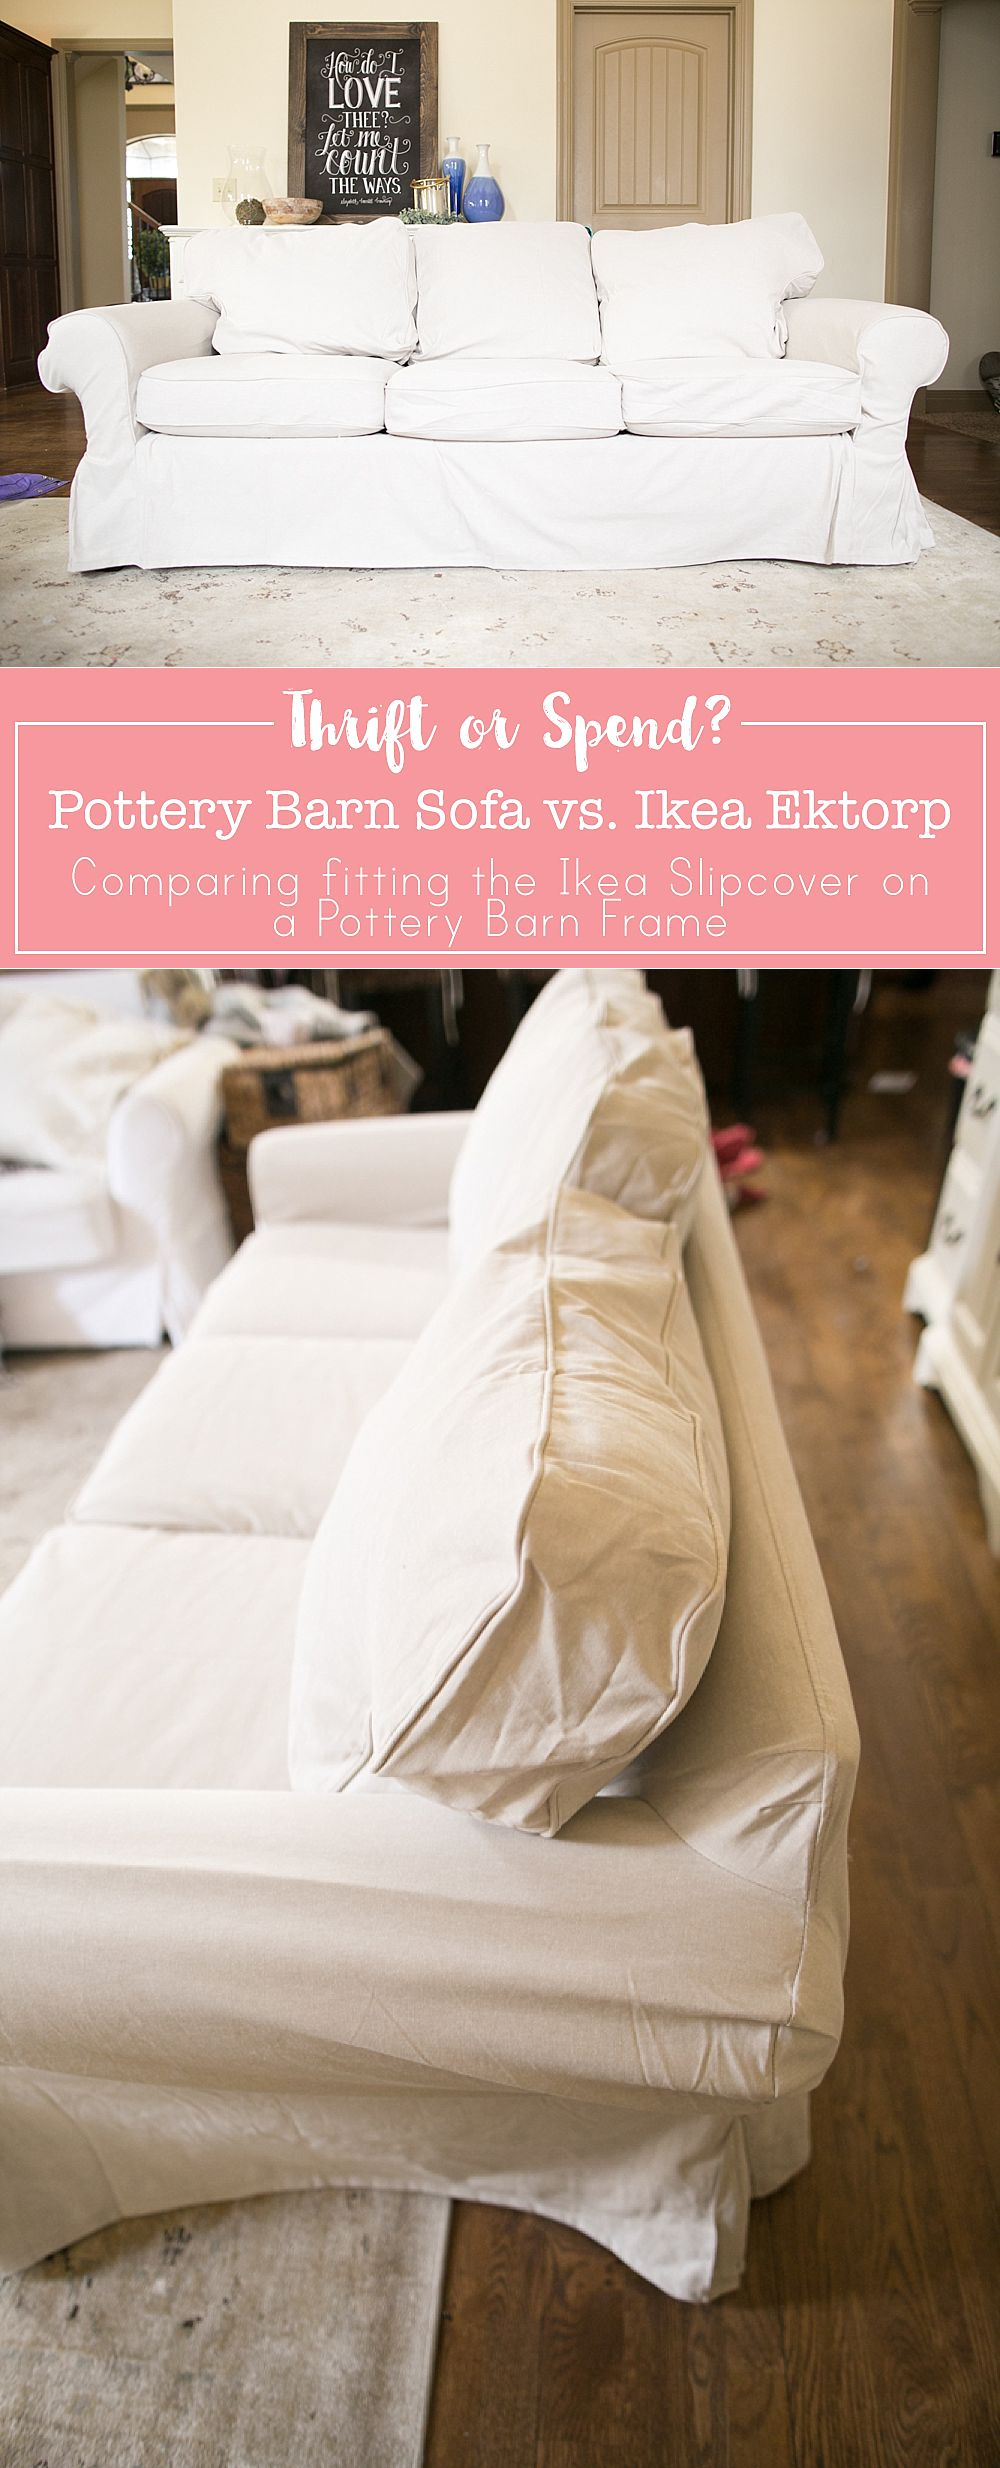 Does The Ikea Ektorp Slipcover Fit Pottery Barn Basic